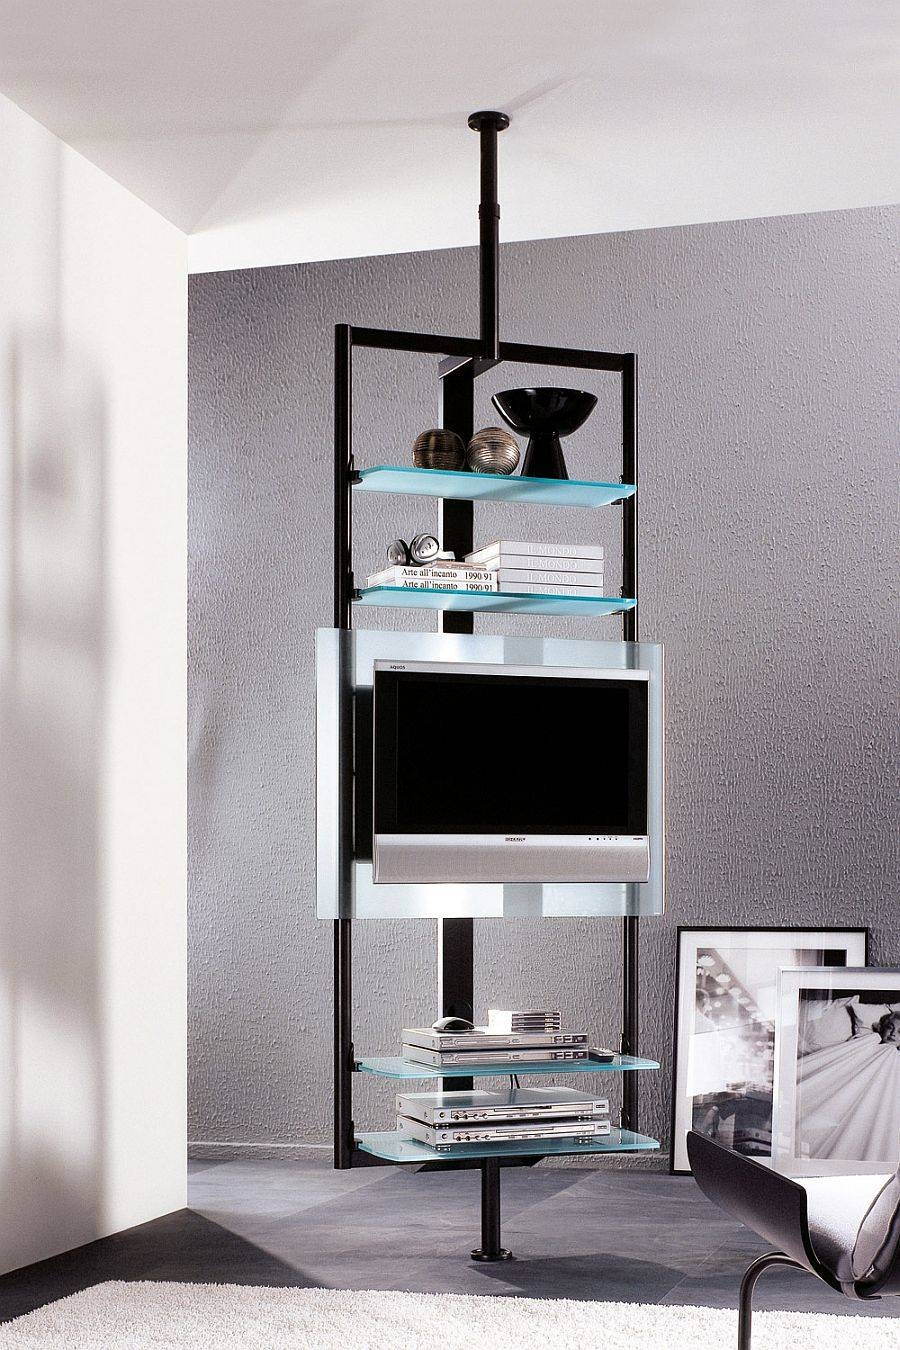 Excellent Tv Stand Small Space 20 On New Trends With Tv Stand With Regard To Tv Stands For Small Spaces (View 2 of 15)